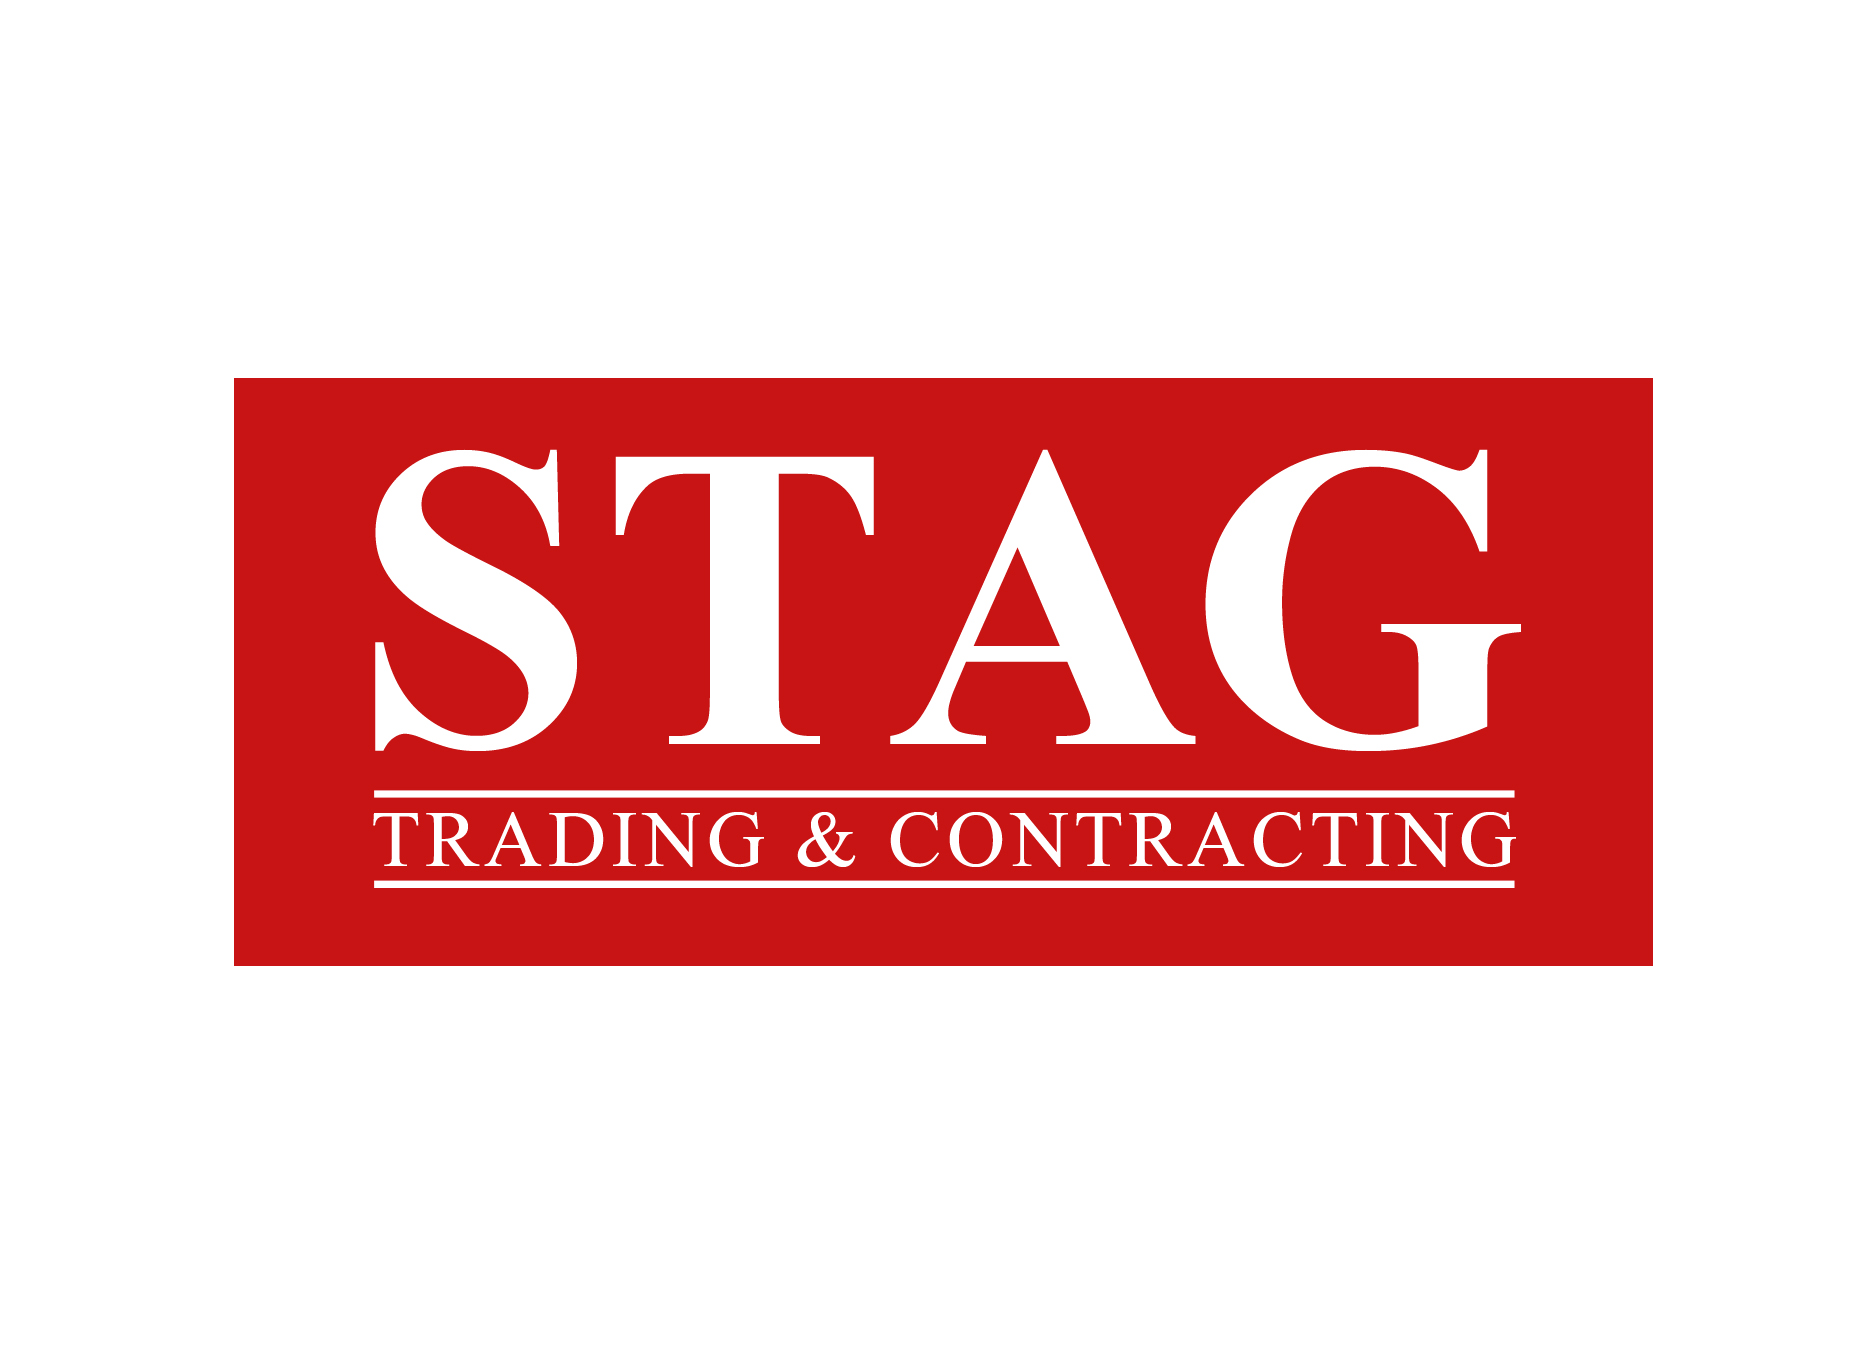 Logo Design by omARTist - Entry No. 60 in the Logo Design Contest Captivating Logo Design for STAG Trading & Contracting.